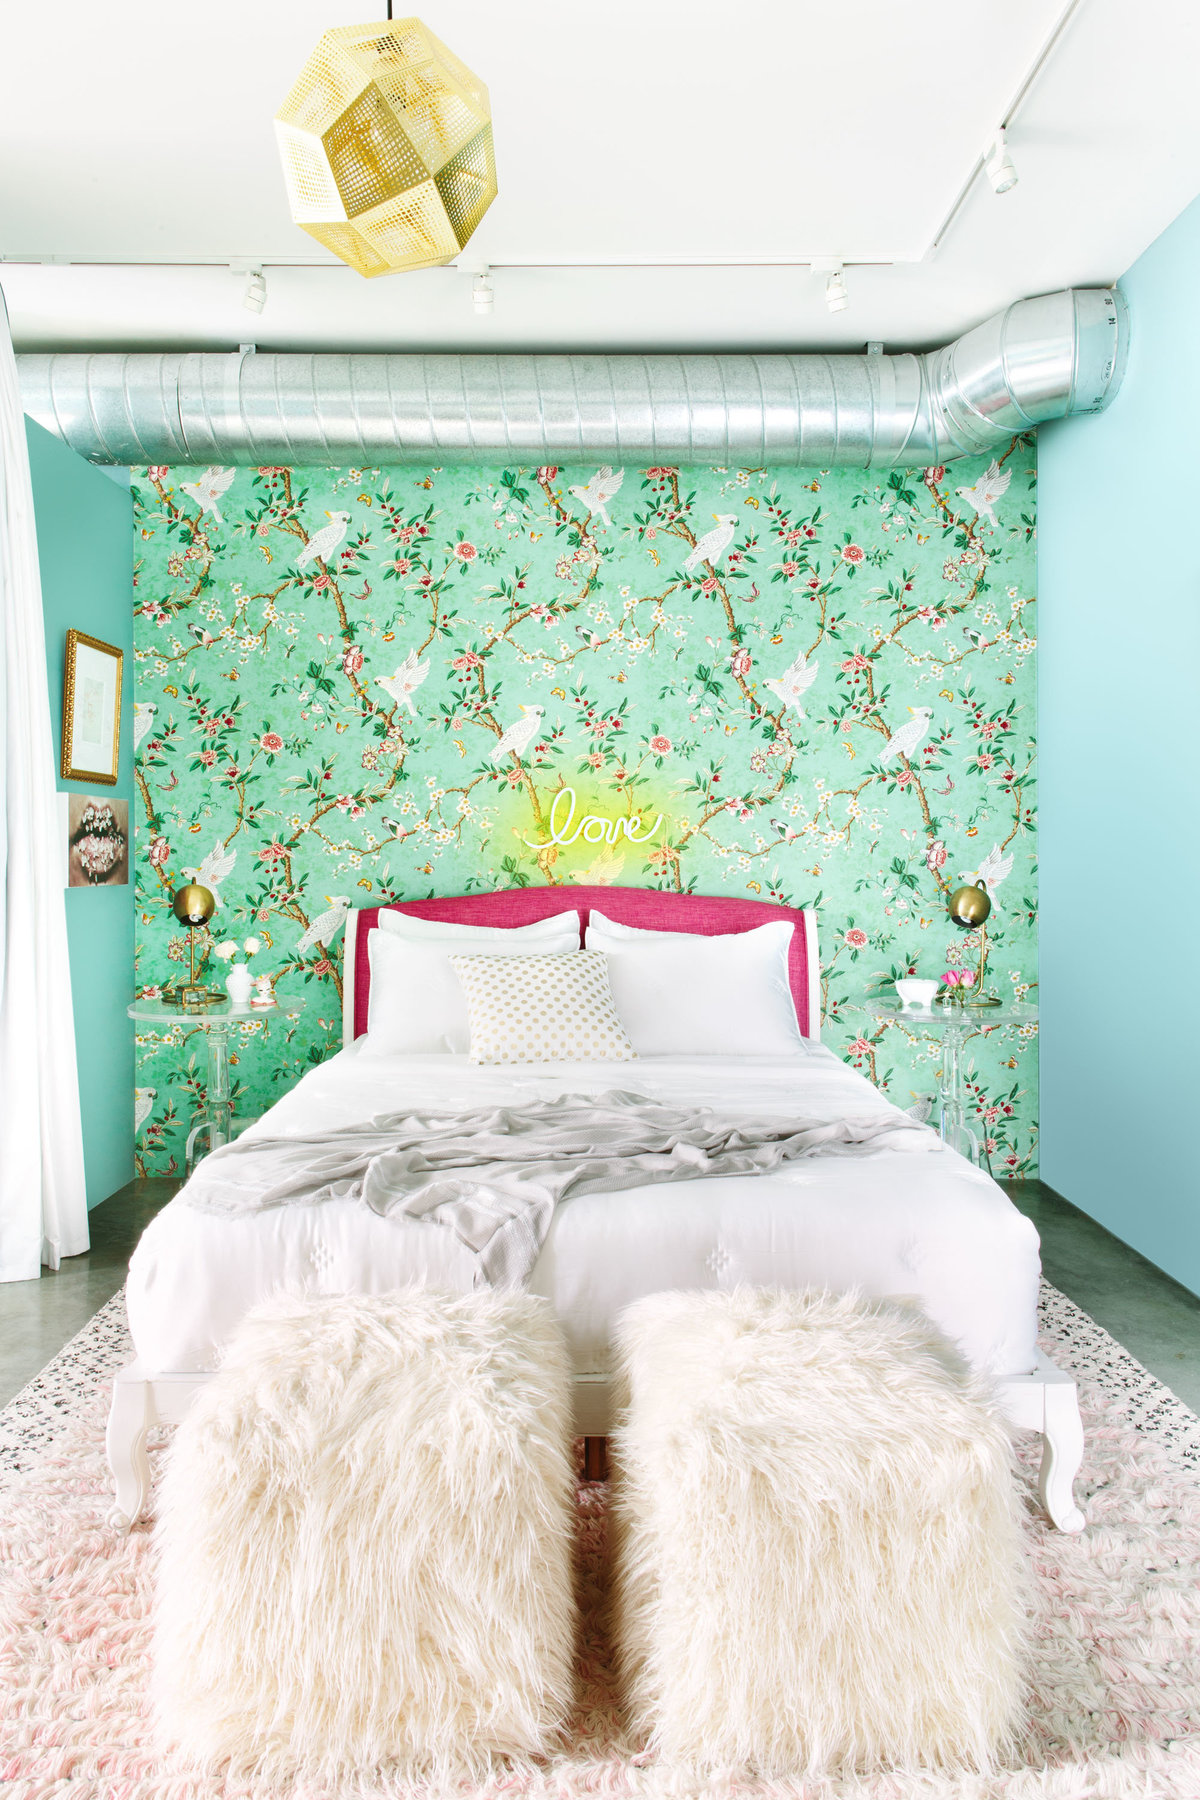 Glamour-Nest-Los-Angeles-Girly-Glamour-Interior-Bedroom-04